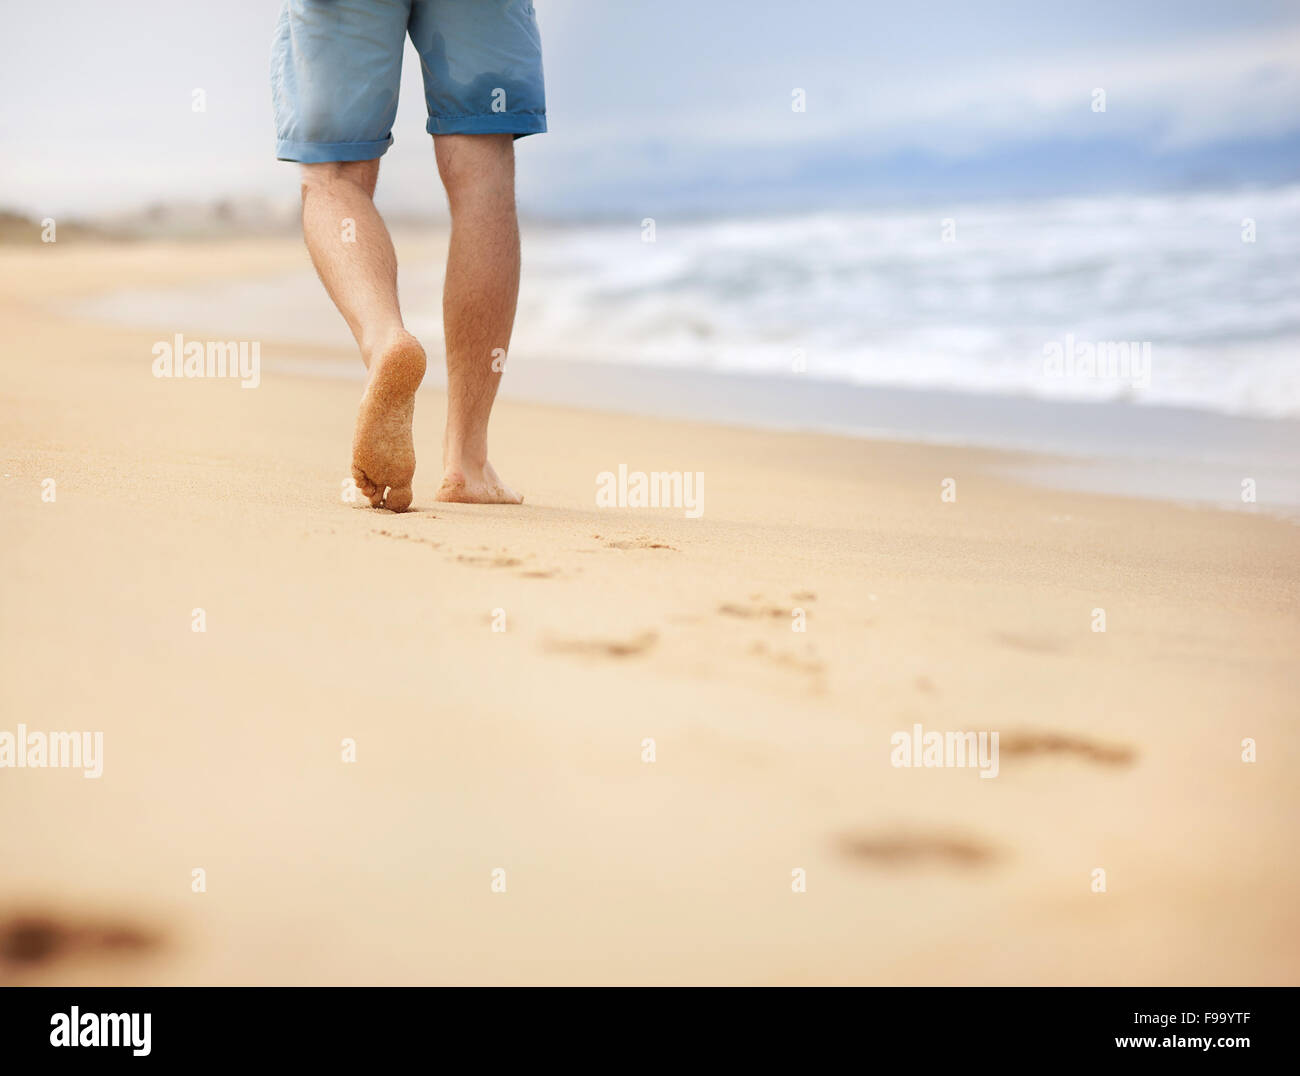 Detail of male feet walking at the sandy beach - Stock Image